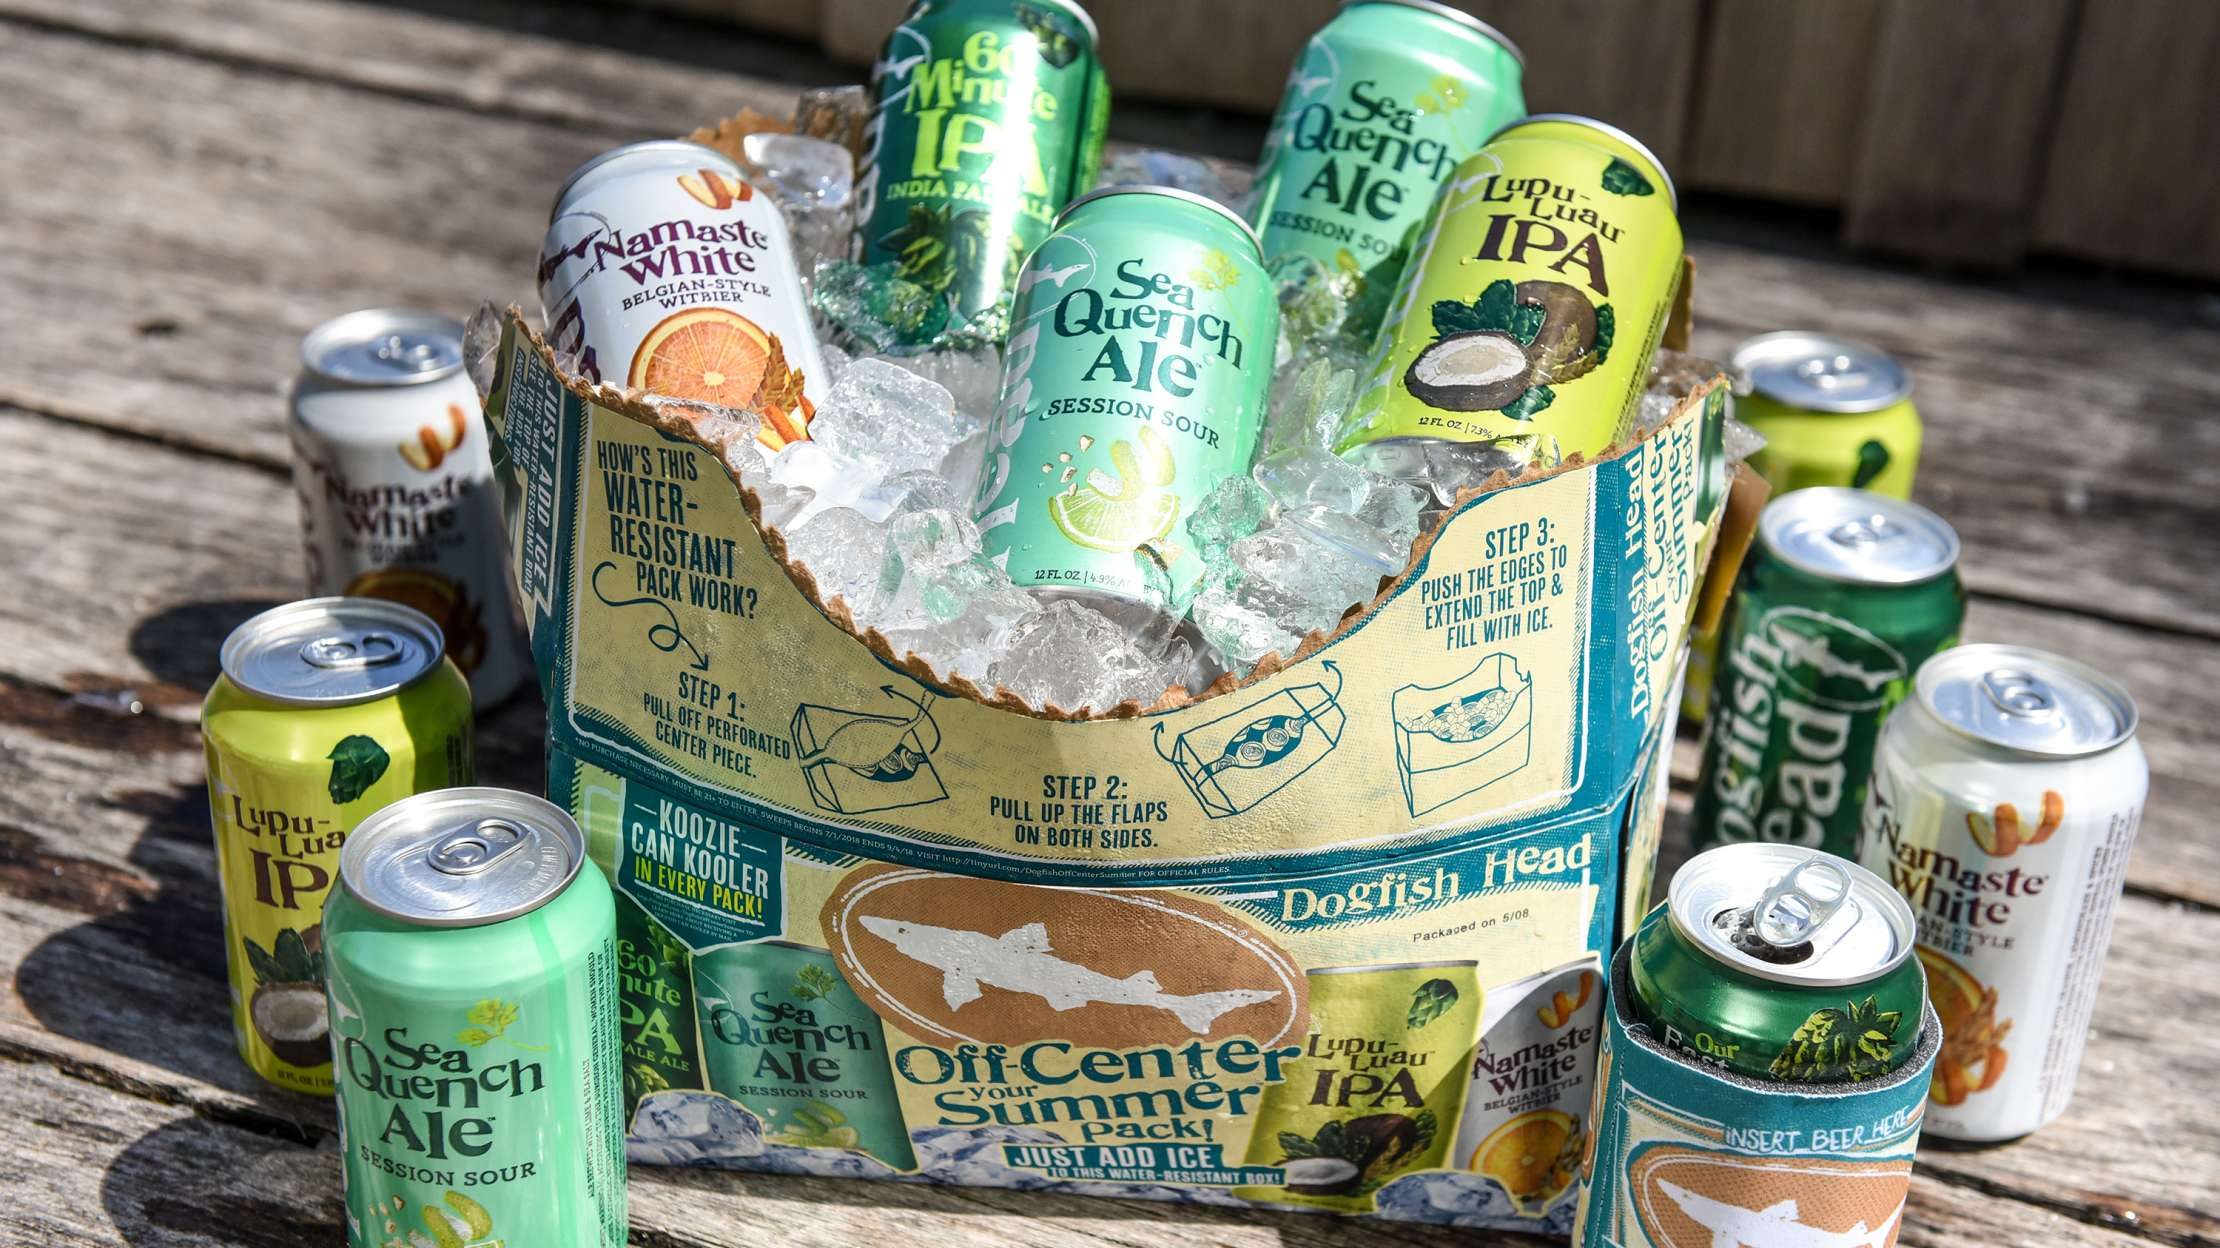 Dogfish Head's New Beer Packaging Doubles As A Cooler photo